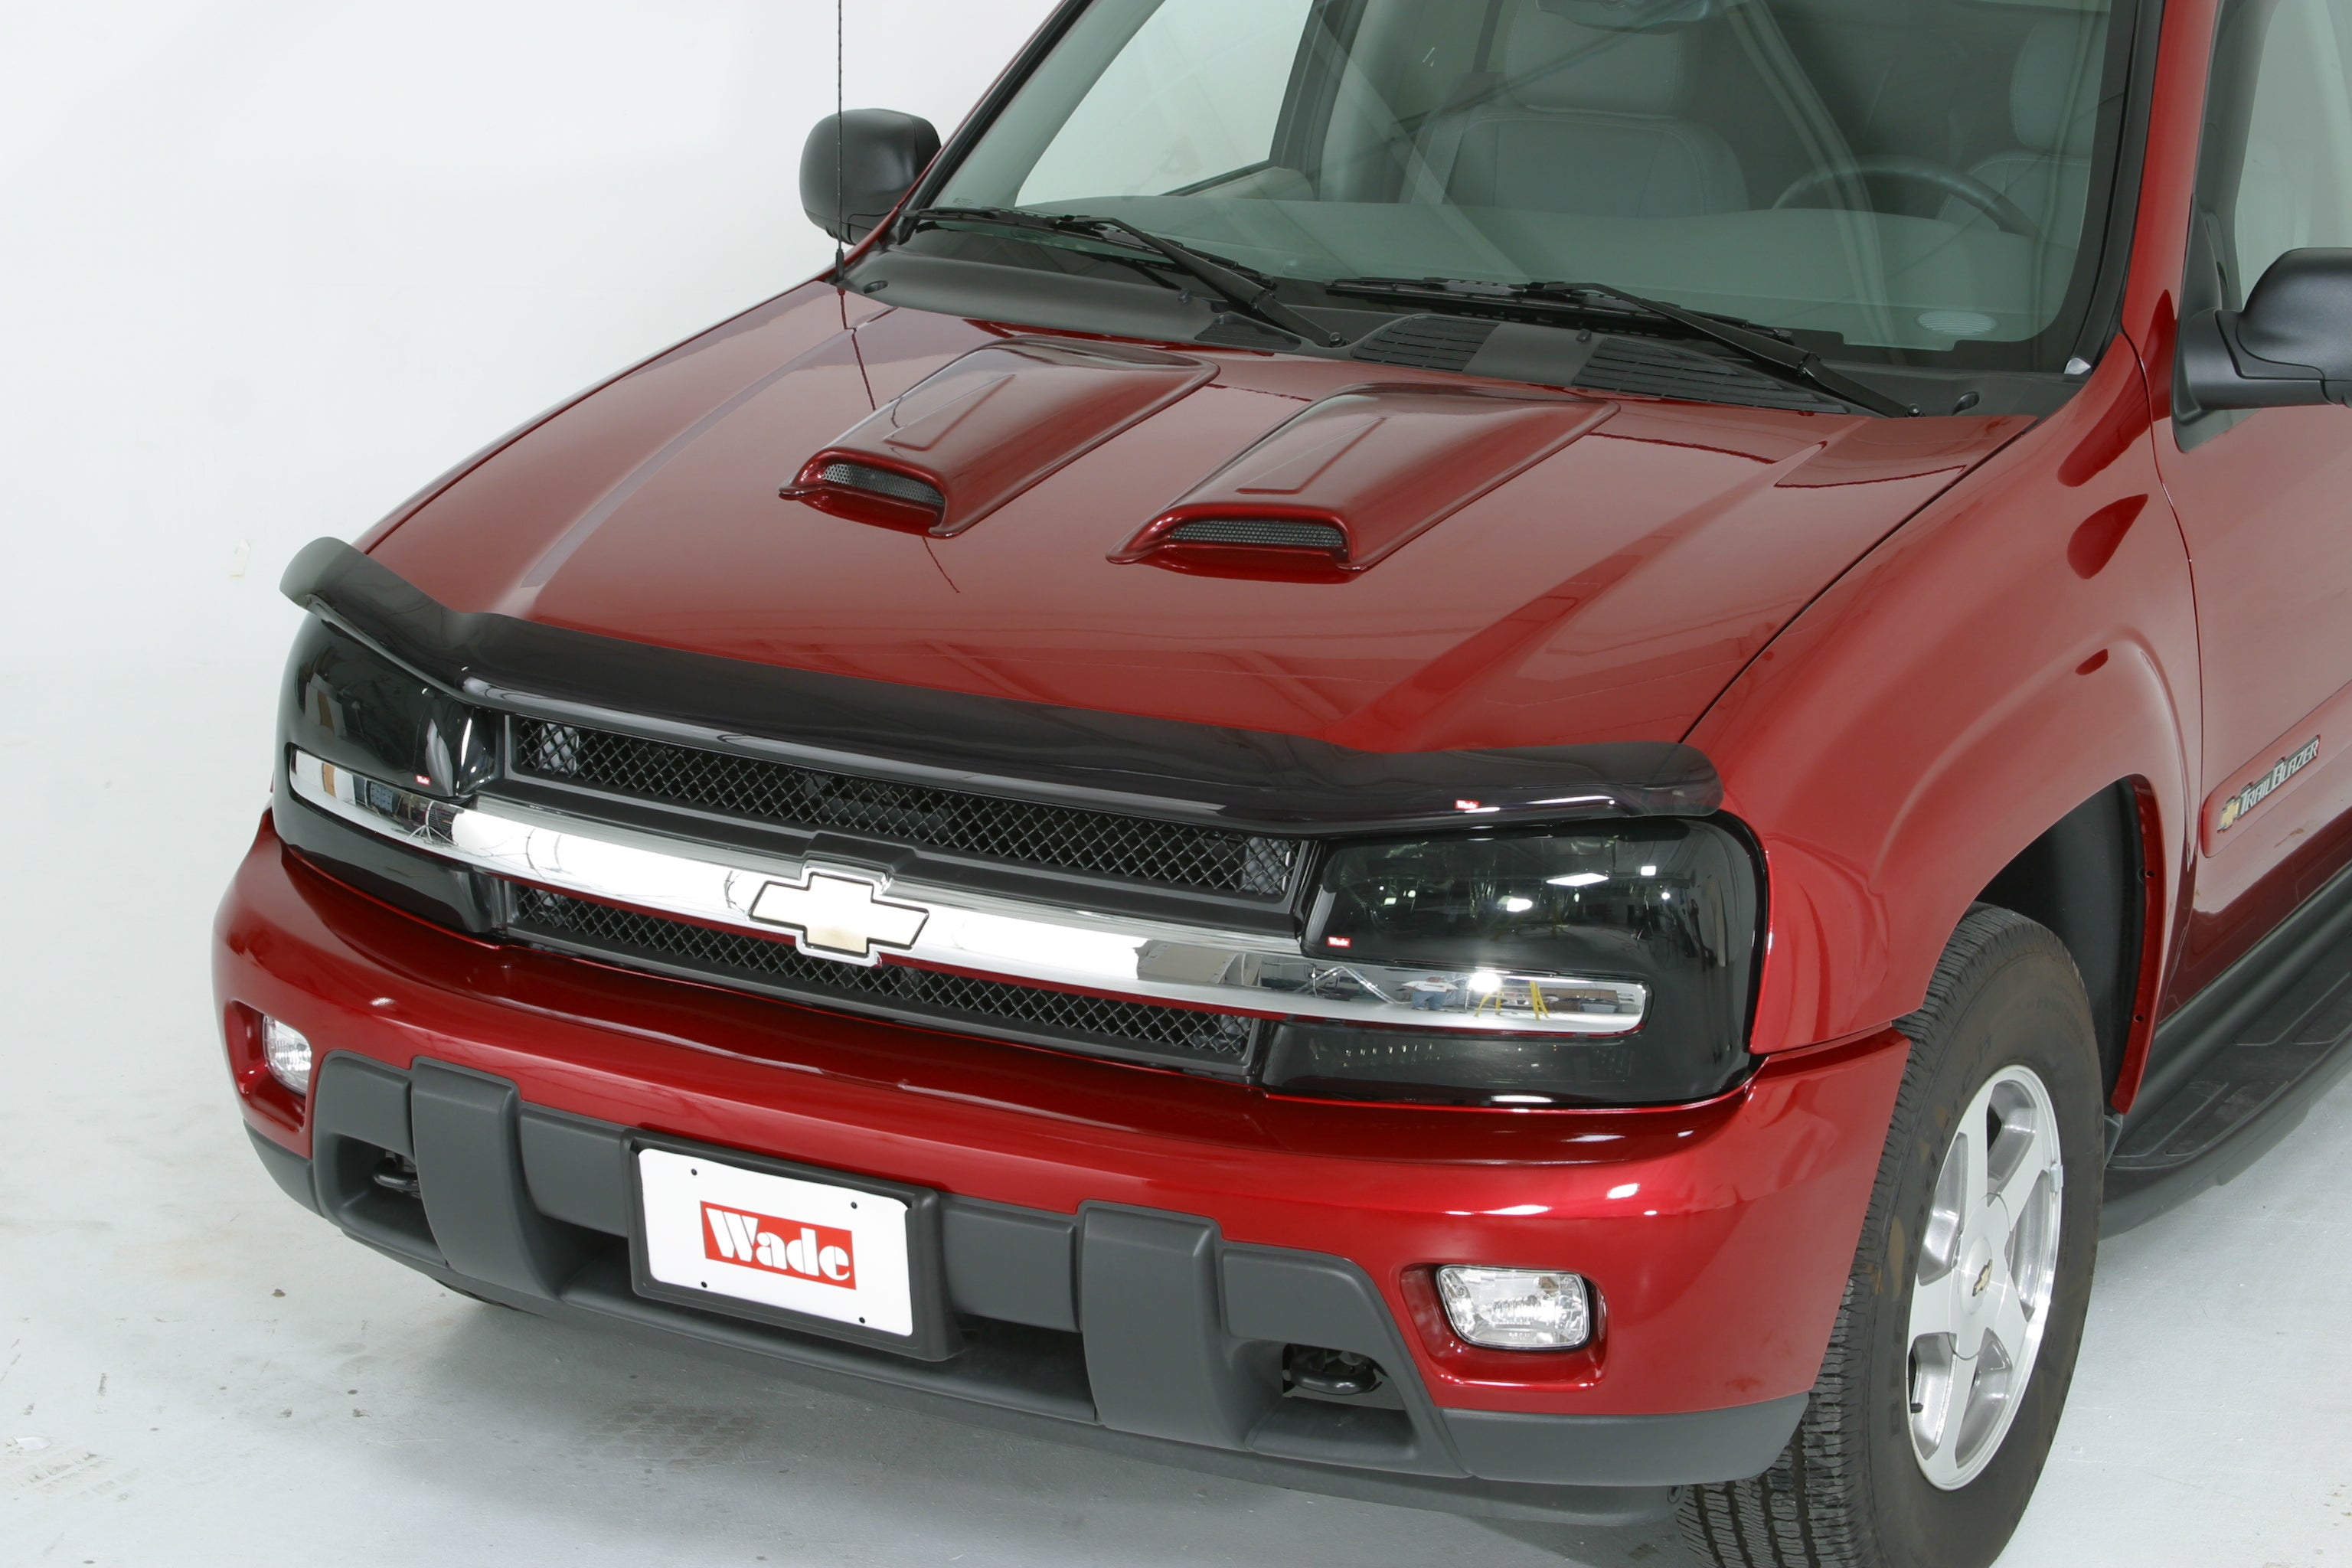 1989 Nissan Pickup 4WD (flush mount) Head Light Covers